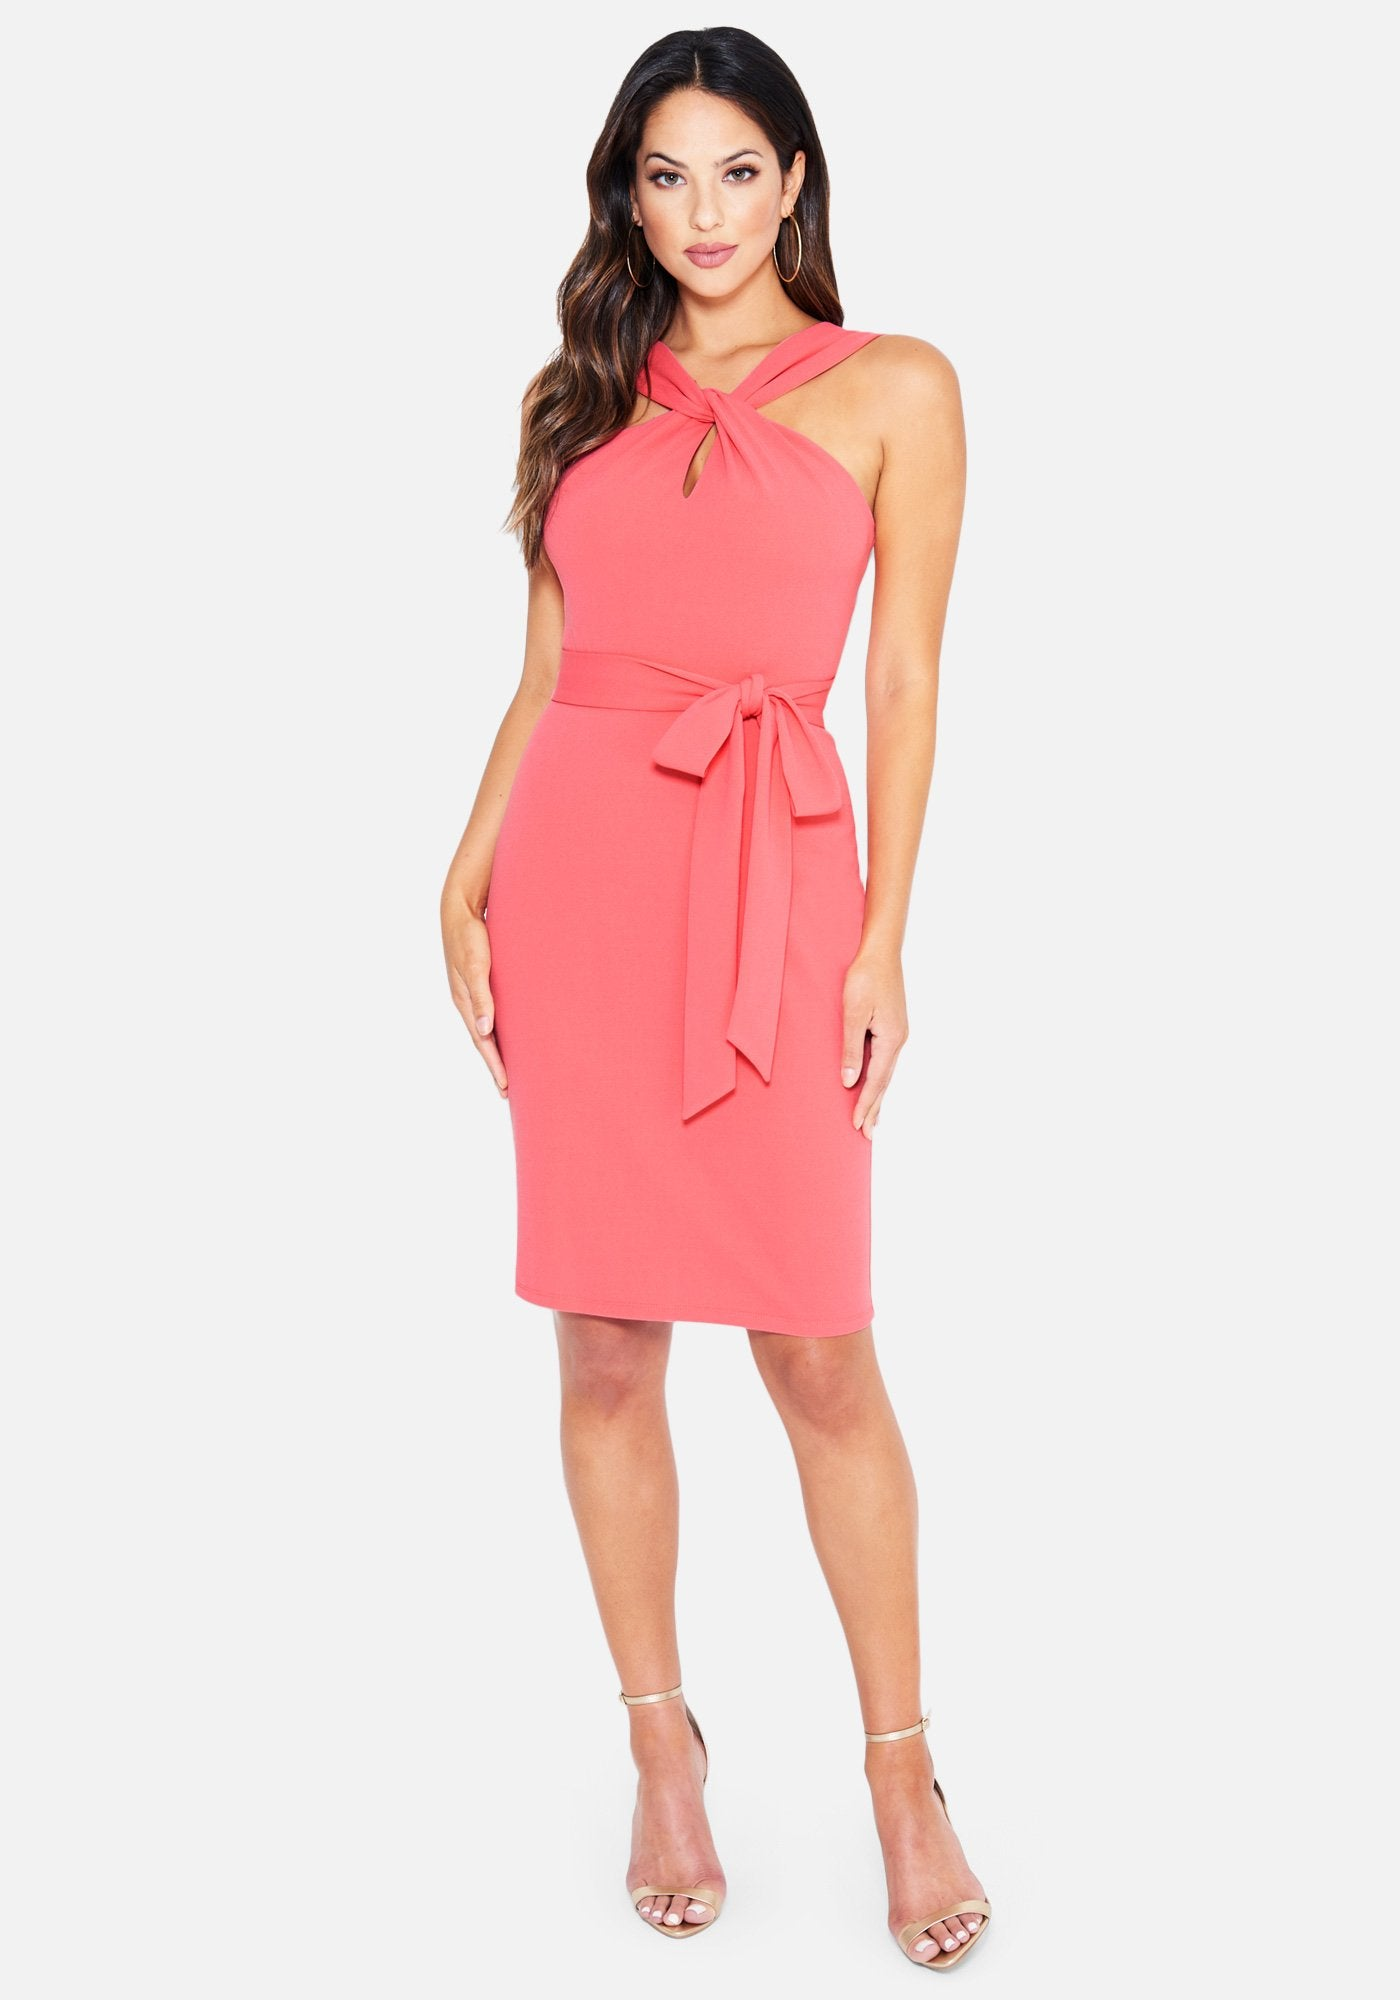 Bebe Women's Keyhole Belted Midi Dress, Size 2 in Coral Polyester